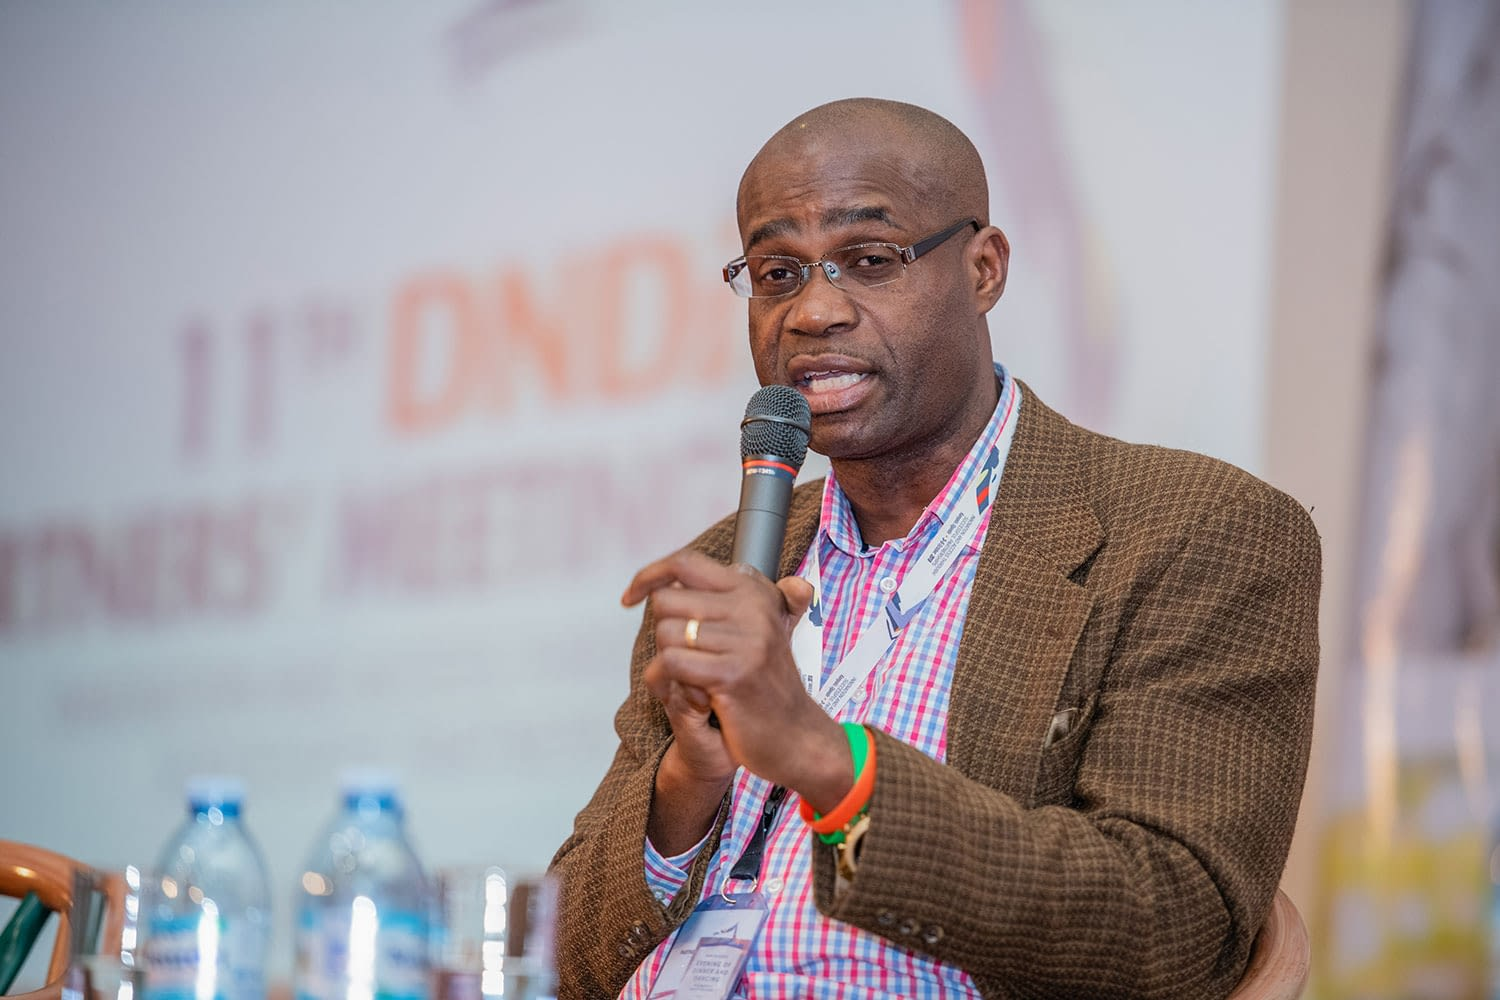 Prof. Kelly Chibale of University of Cape Town, South Africa gives a keynote address on innovation in health Research and Development (R&D) in Africa, for Africa.